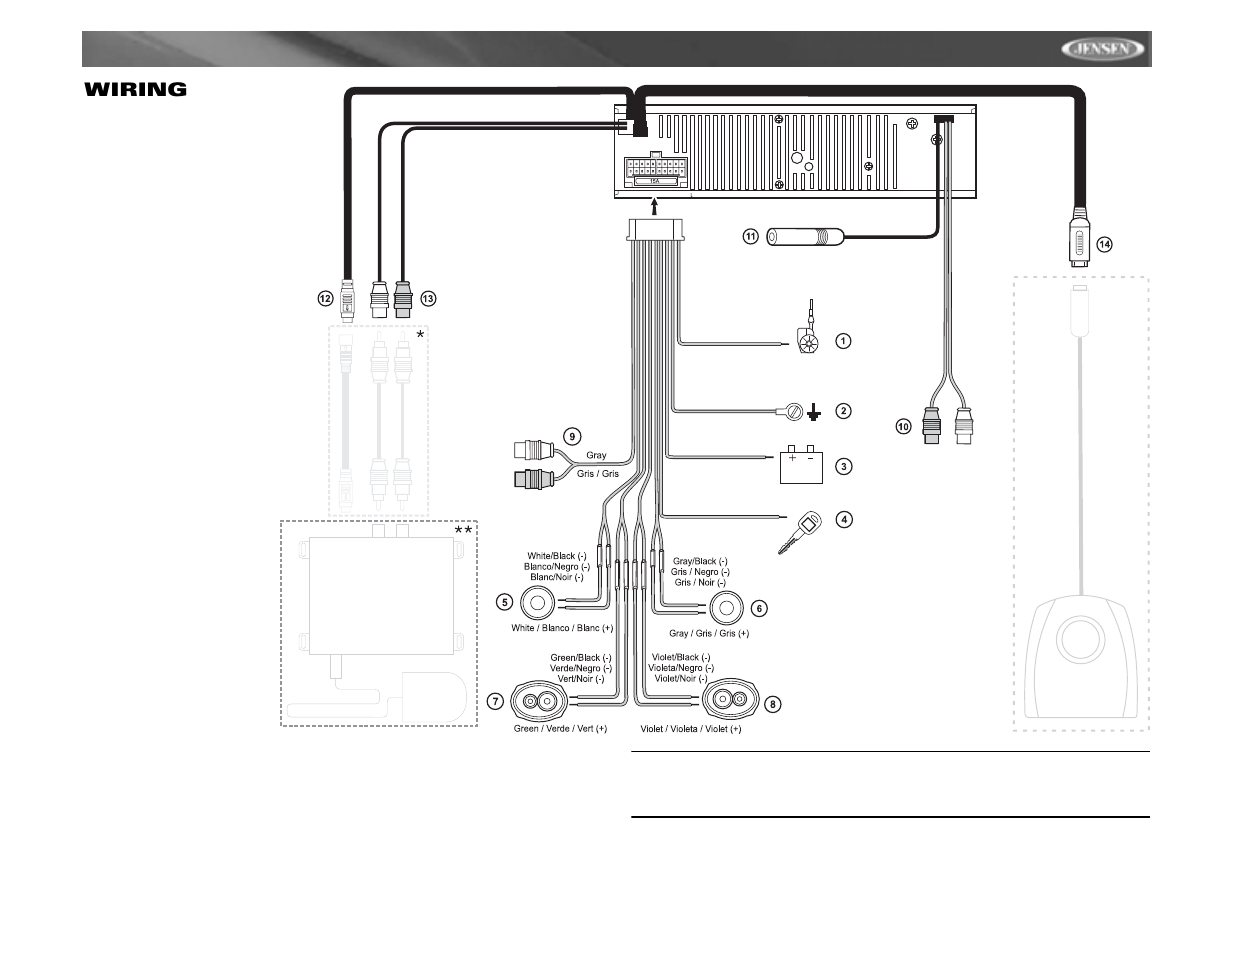 Cdx6311     Wiring      Jensen CDX6311 User Manual   Page 7  52